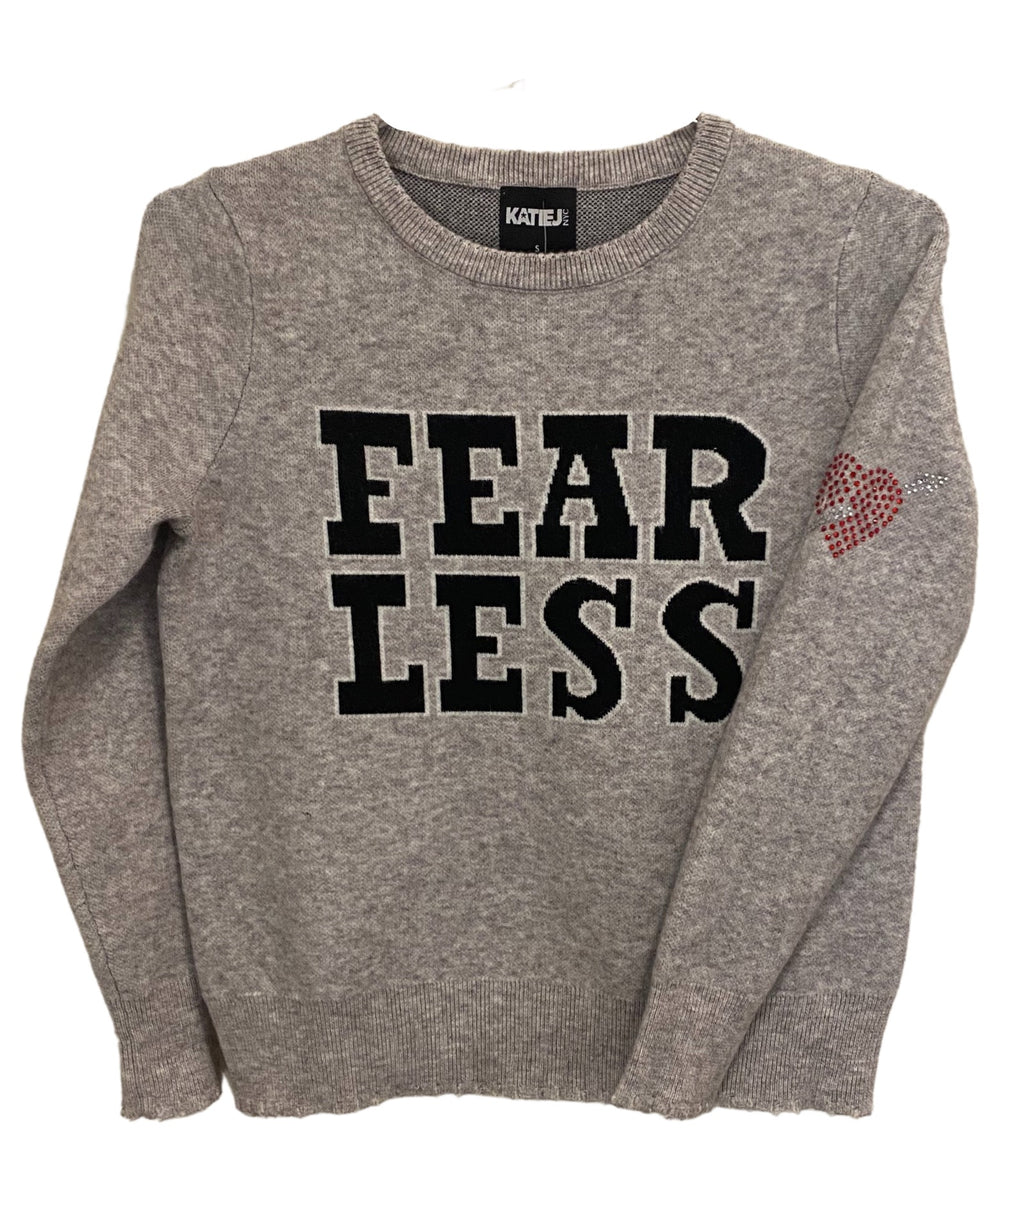 Katie J NYC Girls Fearless Grey Sweater With Navy Lettering